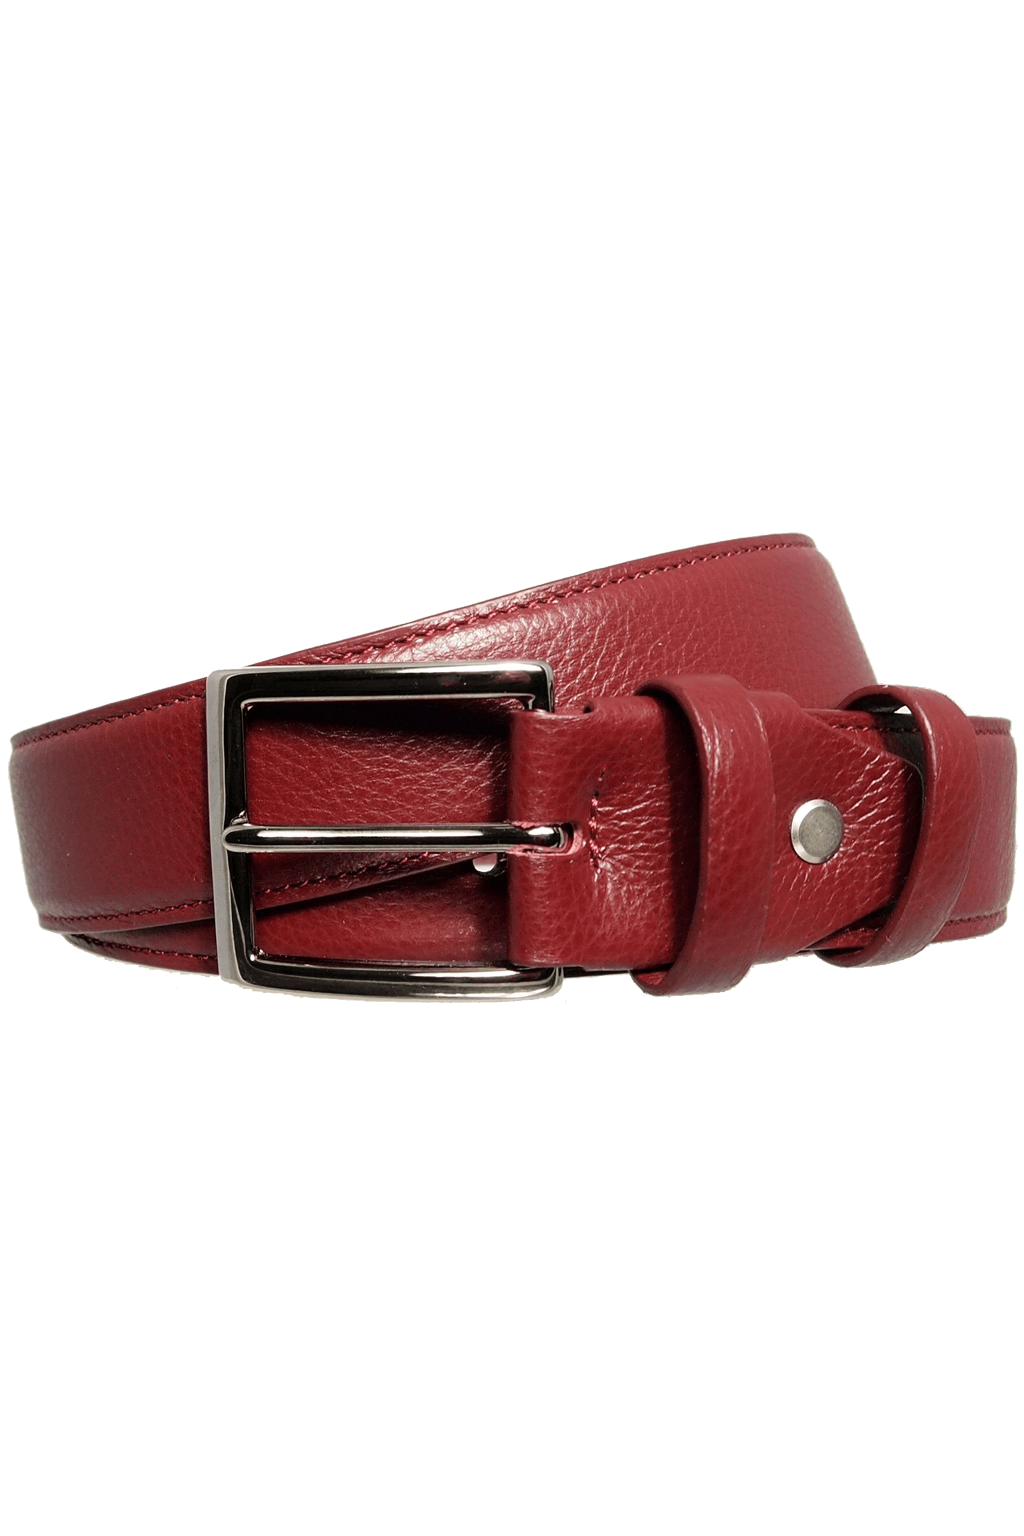 34 mm Duo Ply Leather Belt Bordeaux - Himelhoch's